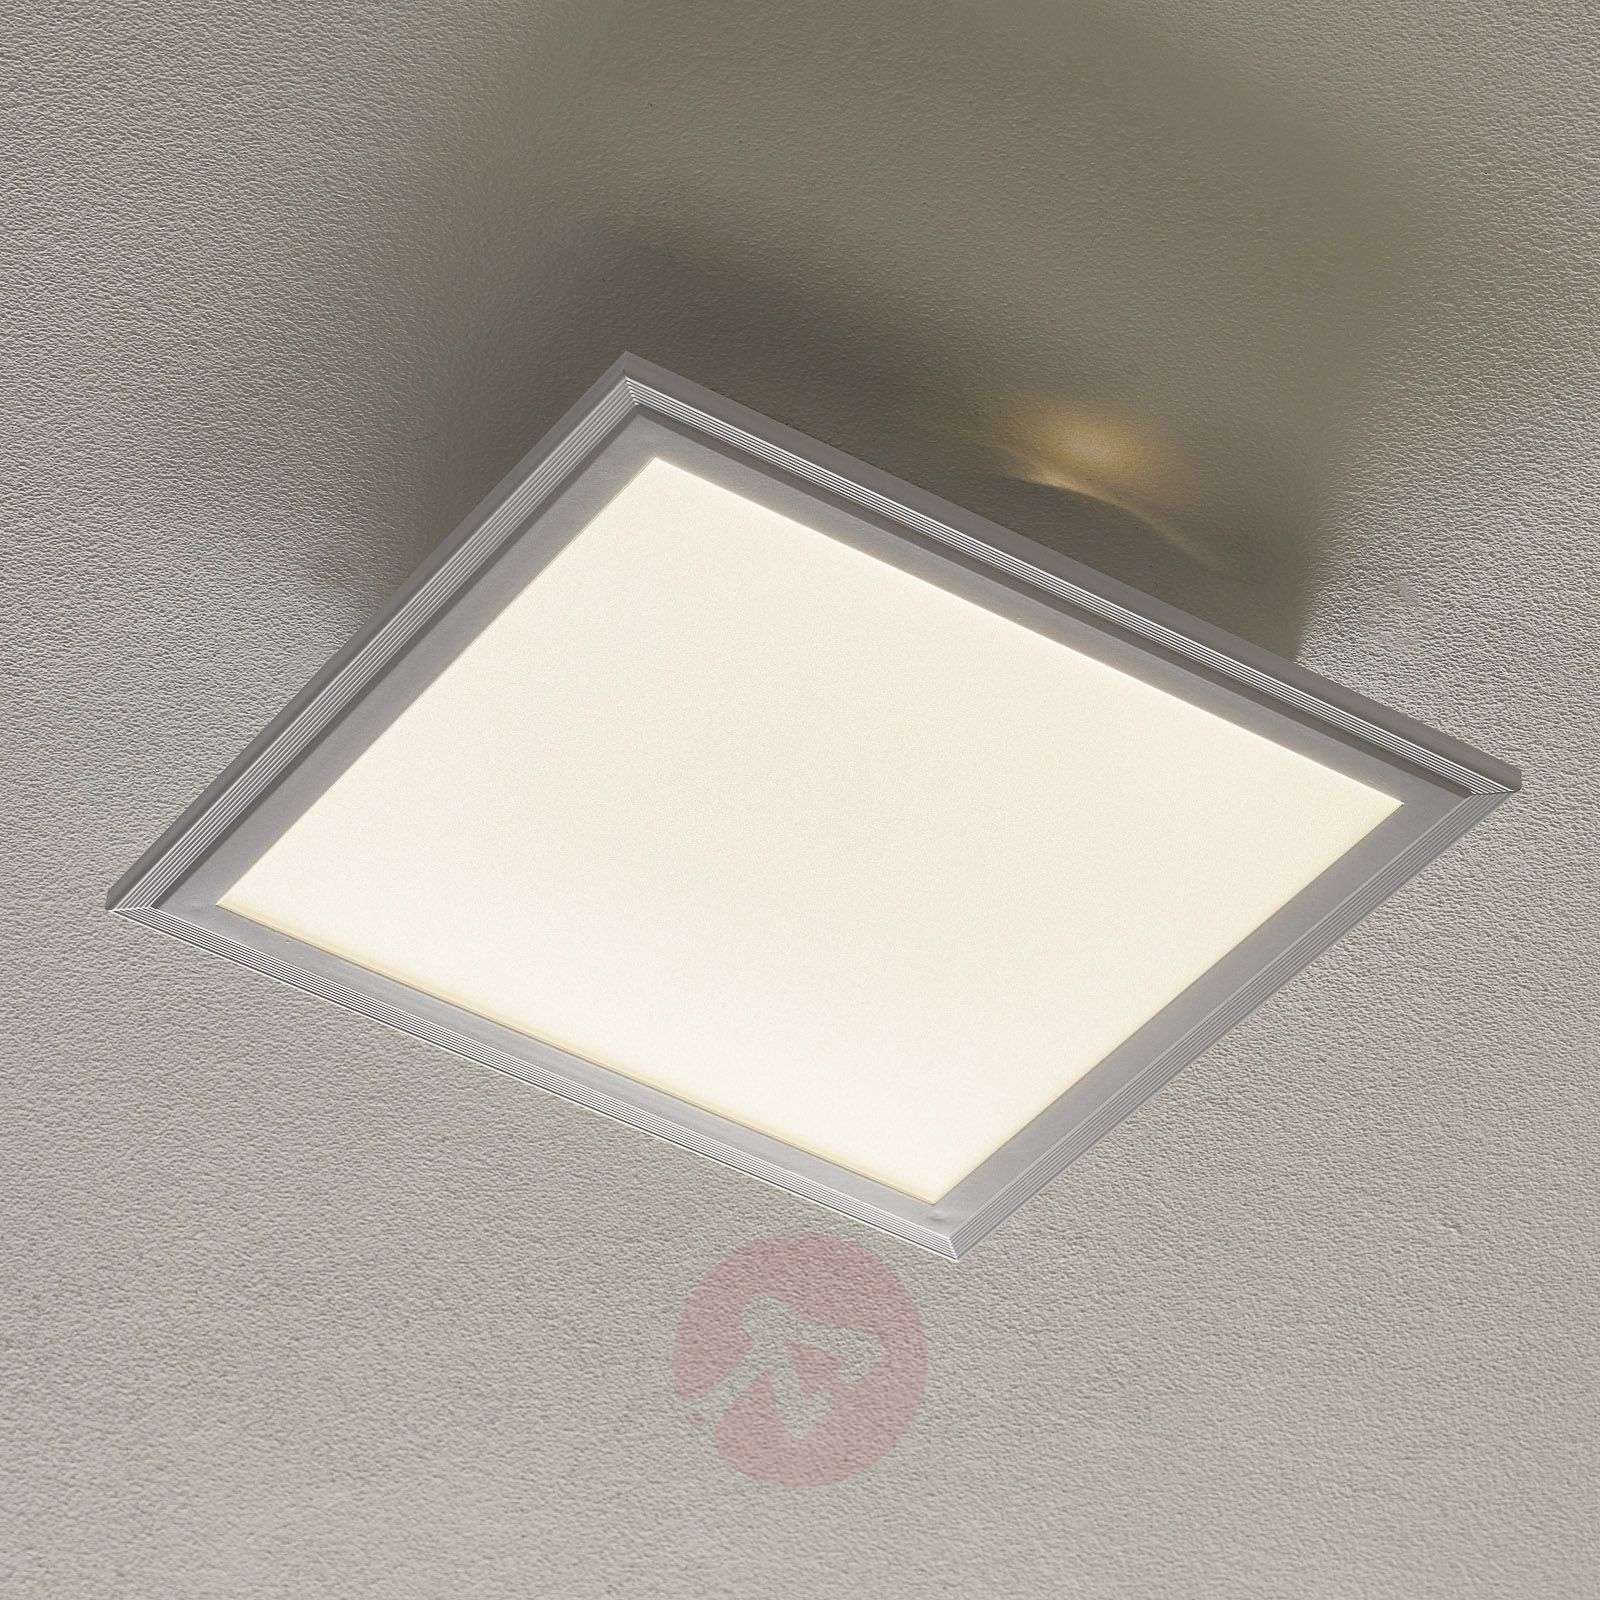 EGLO connect Salobrena-C panel LED, 30x30 cm-3032149-010